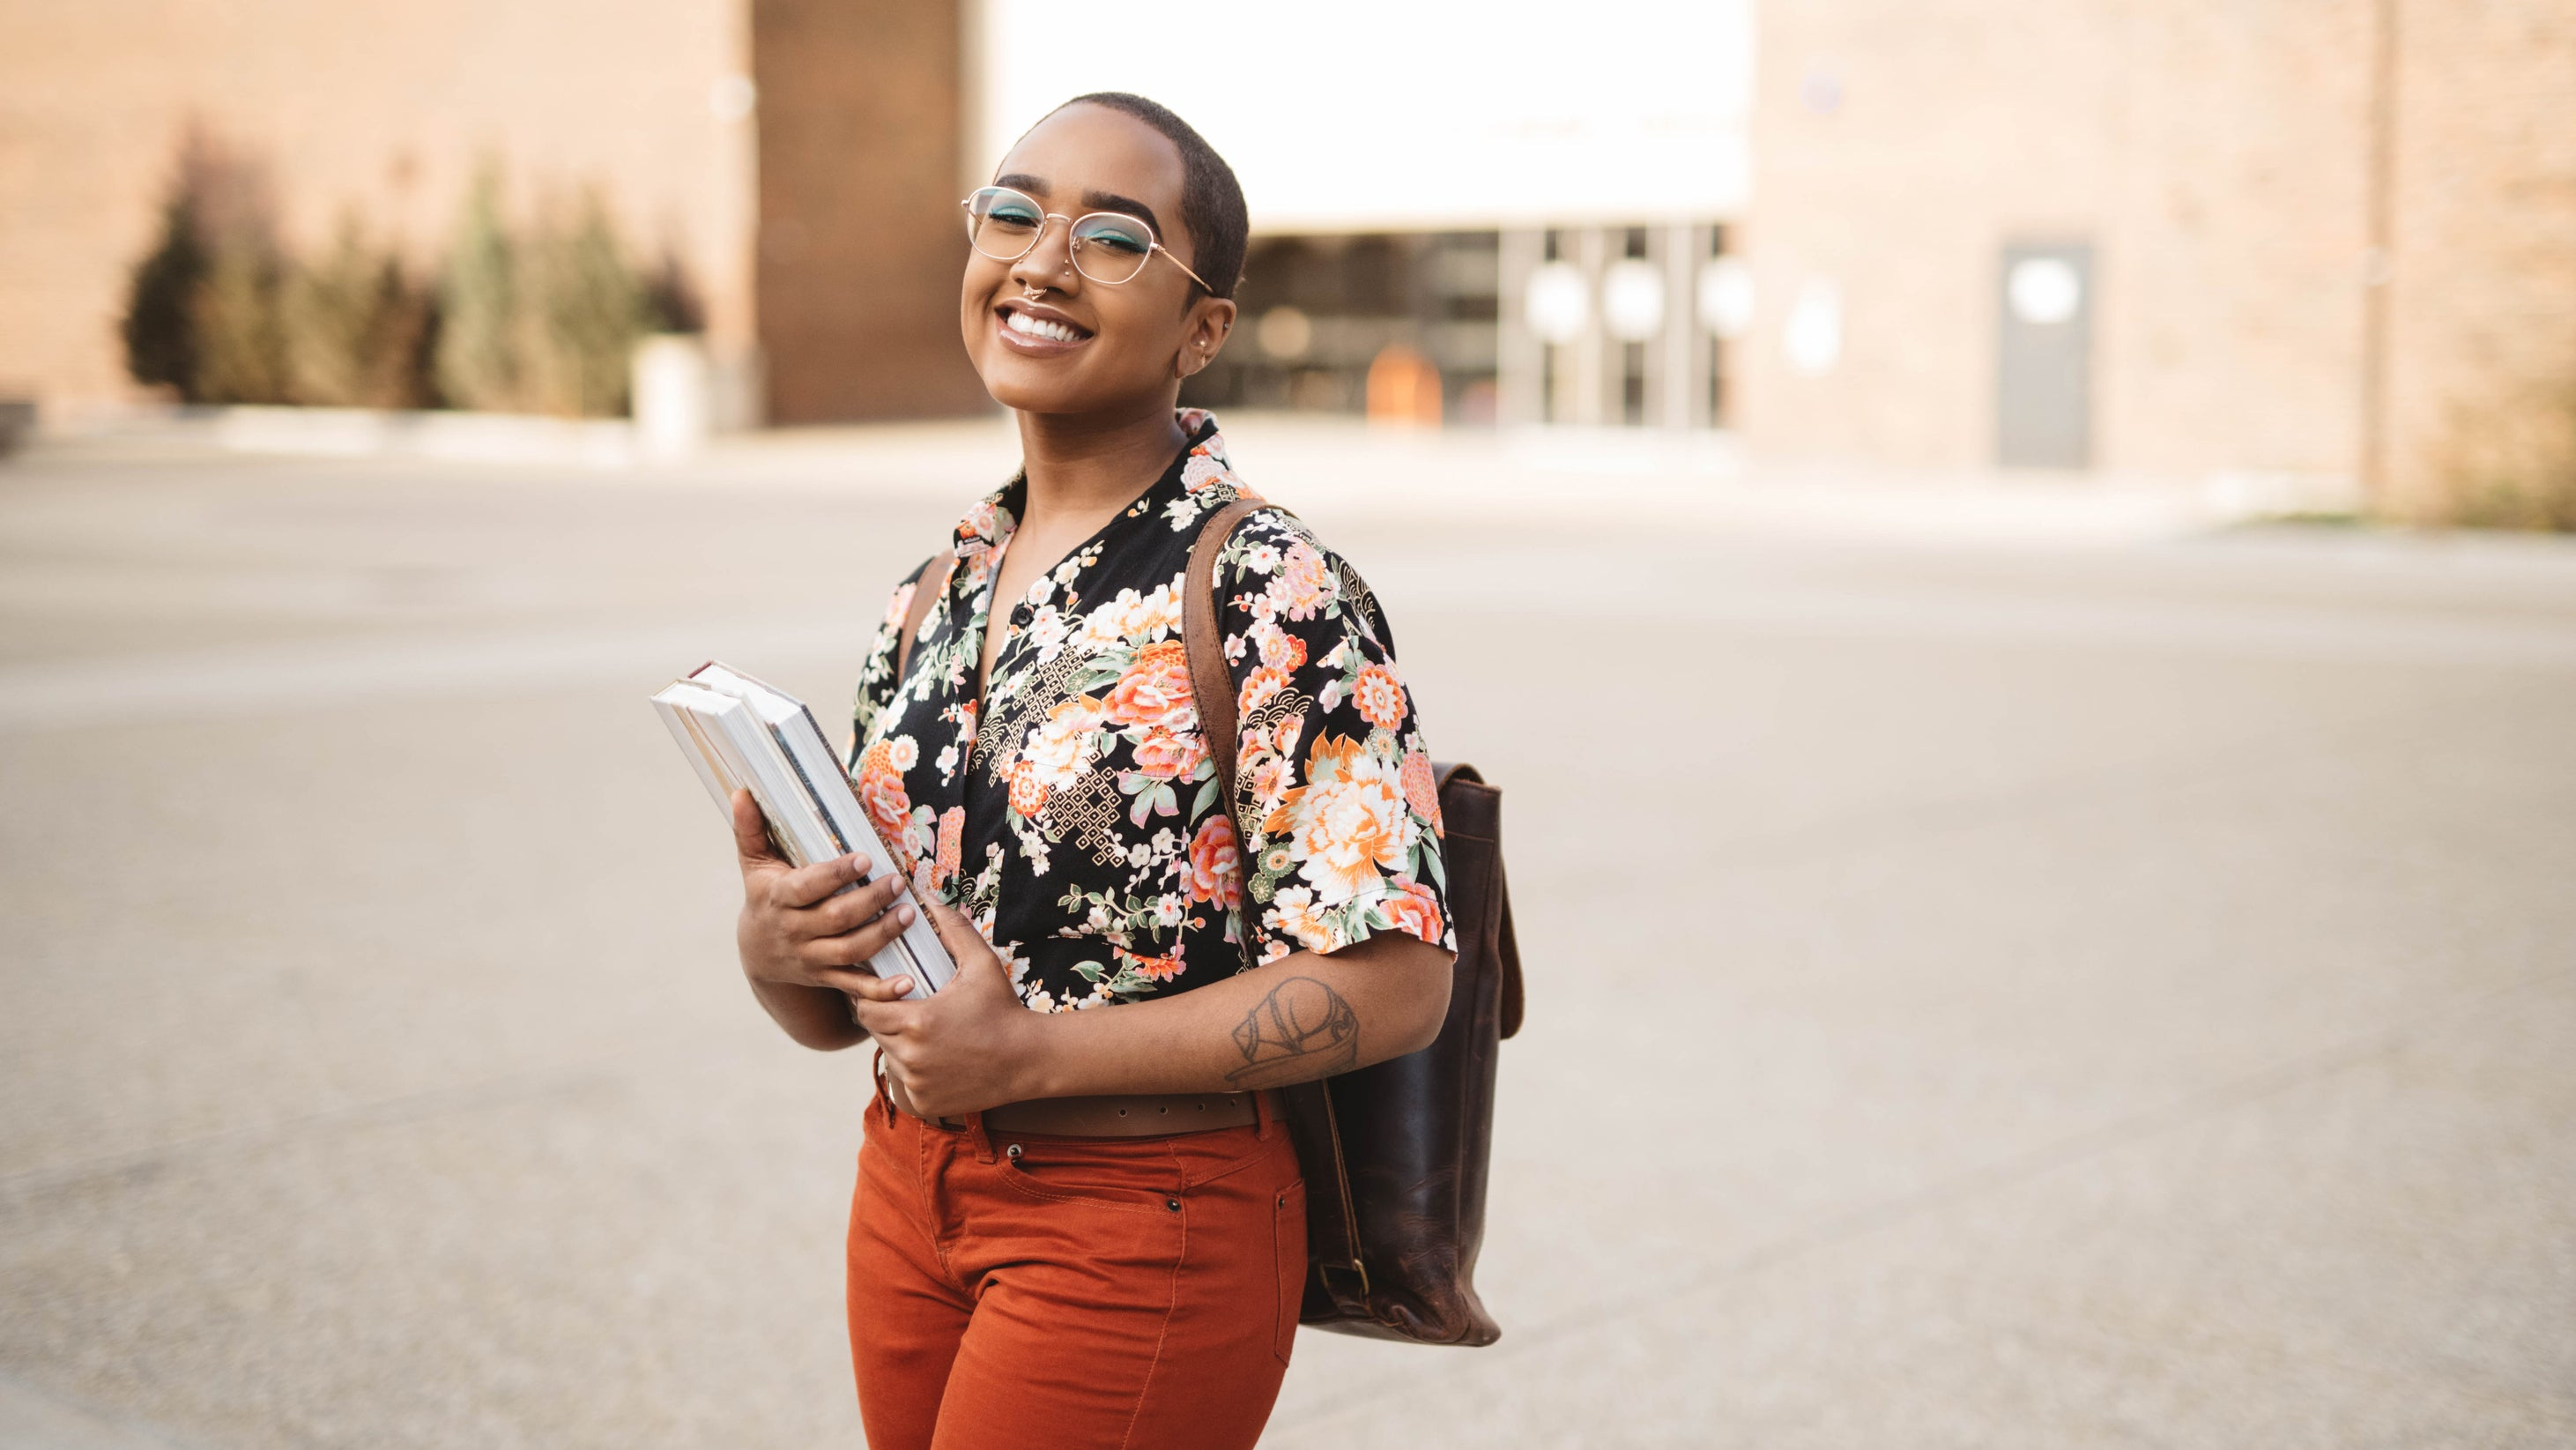 <p>A proud college student, holding her books and smiling wide, wearing a flowered shirt</p>